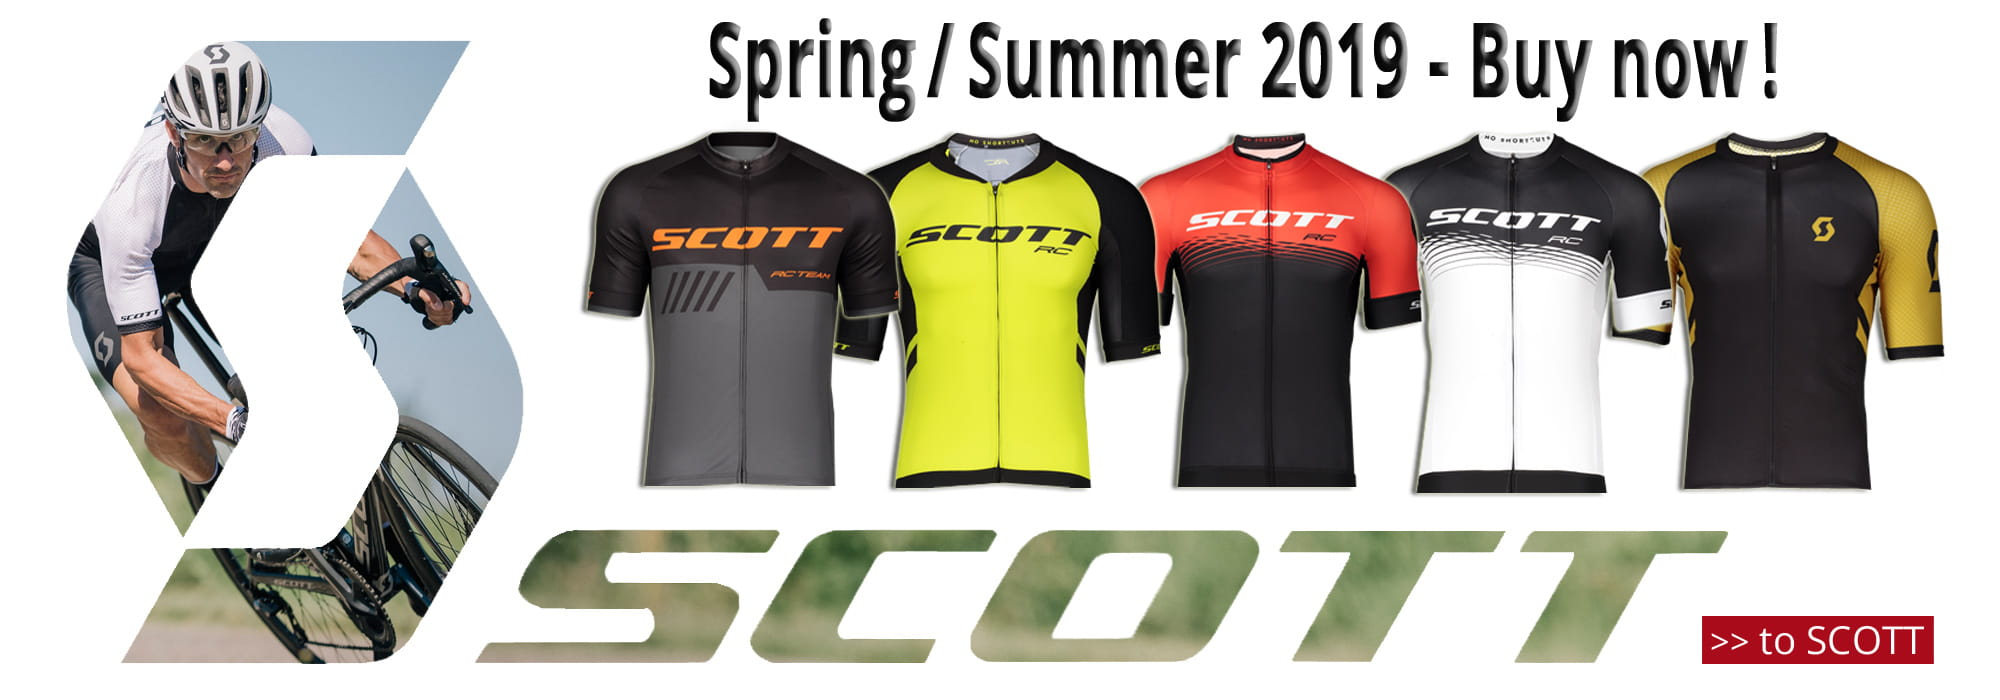 Scott spring / summer 2019 - now available